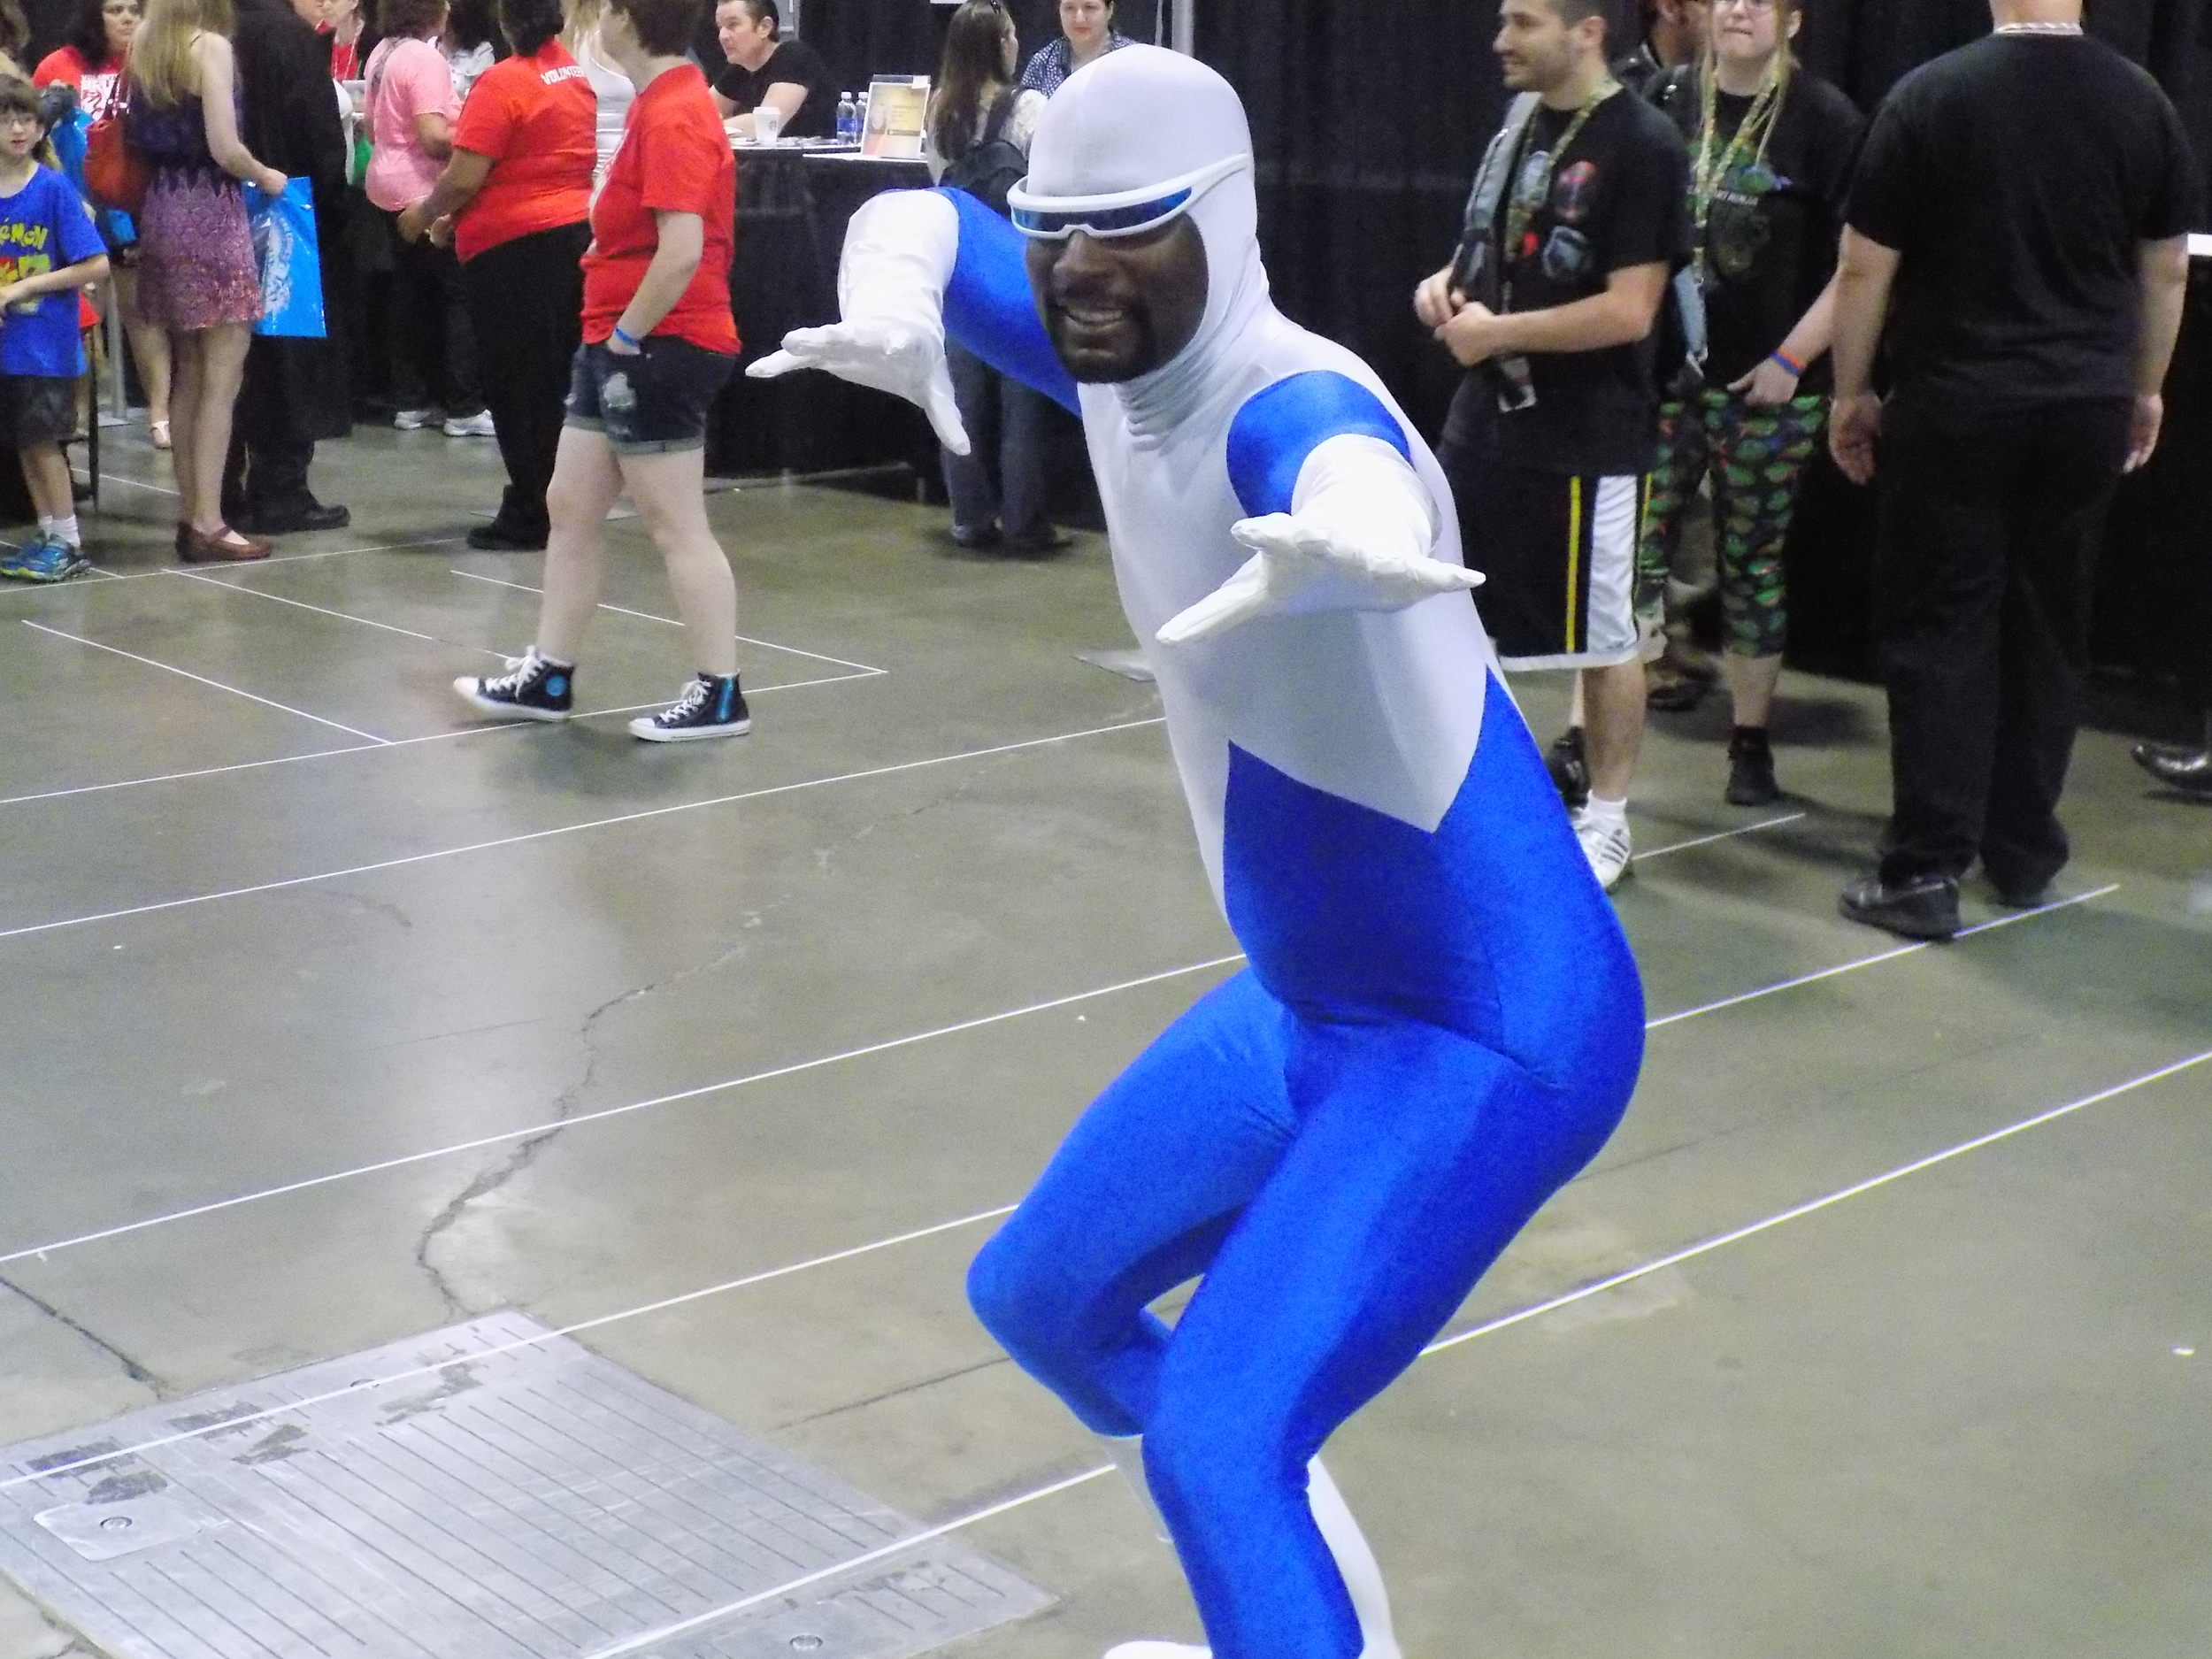 Awesome Con 2015 043.JPG